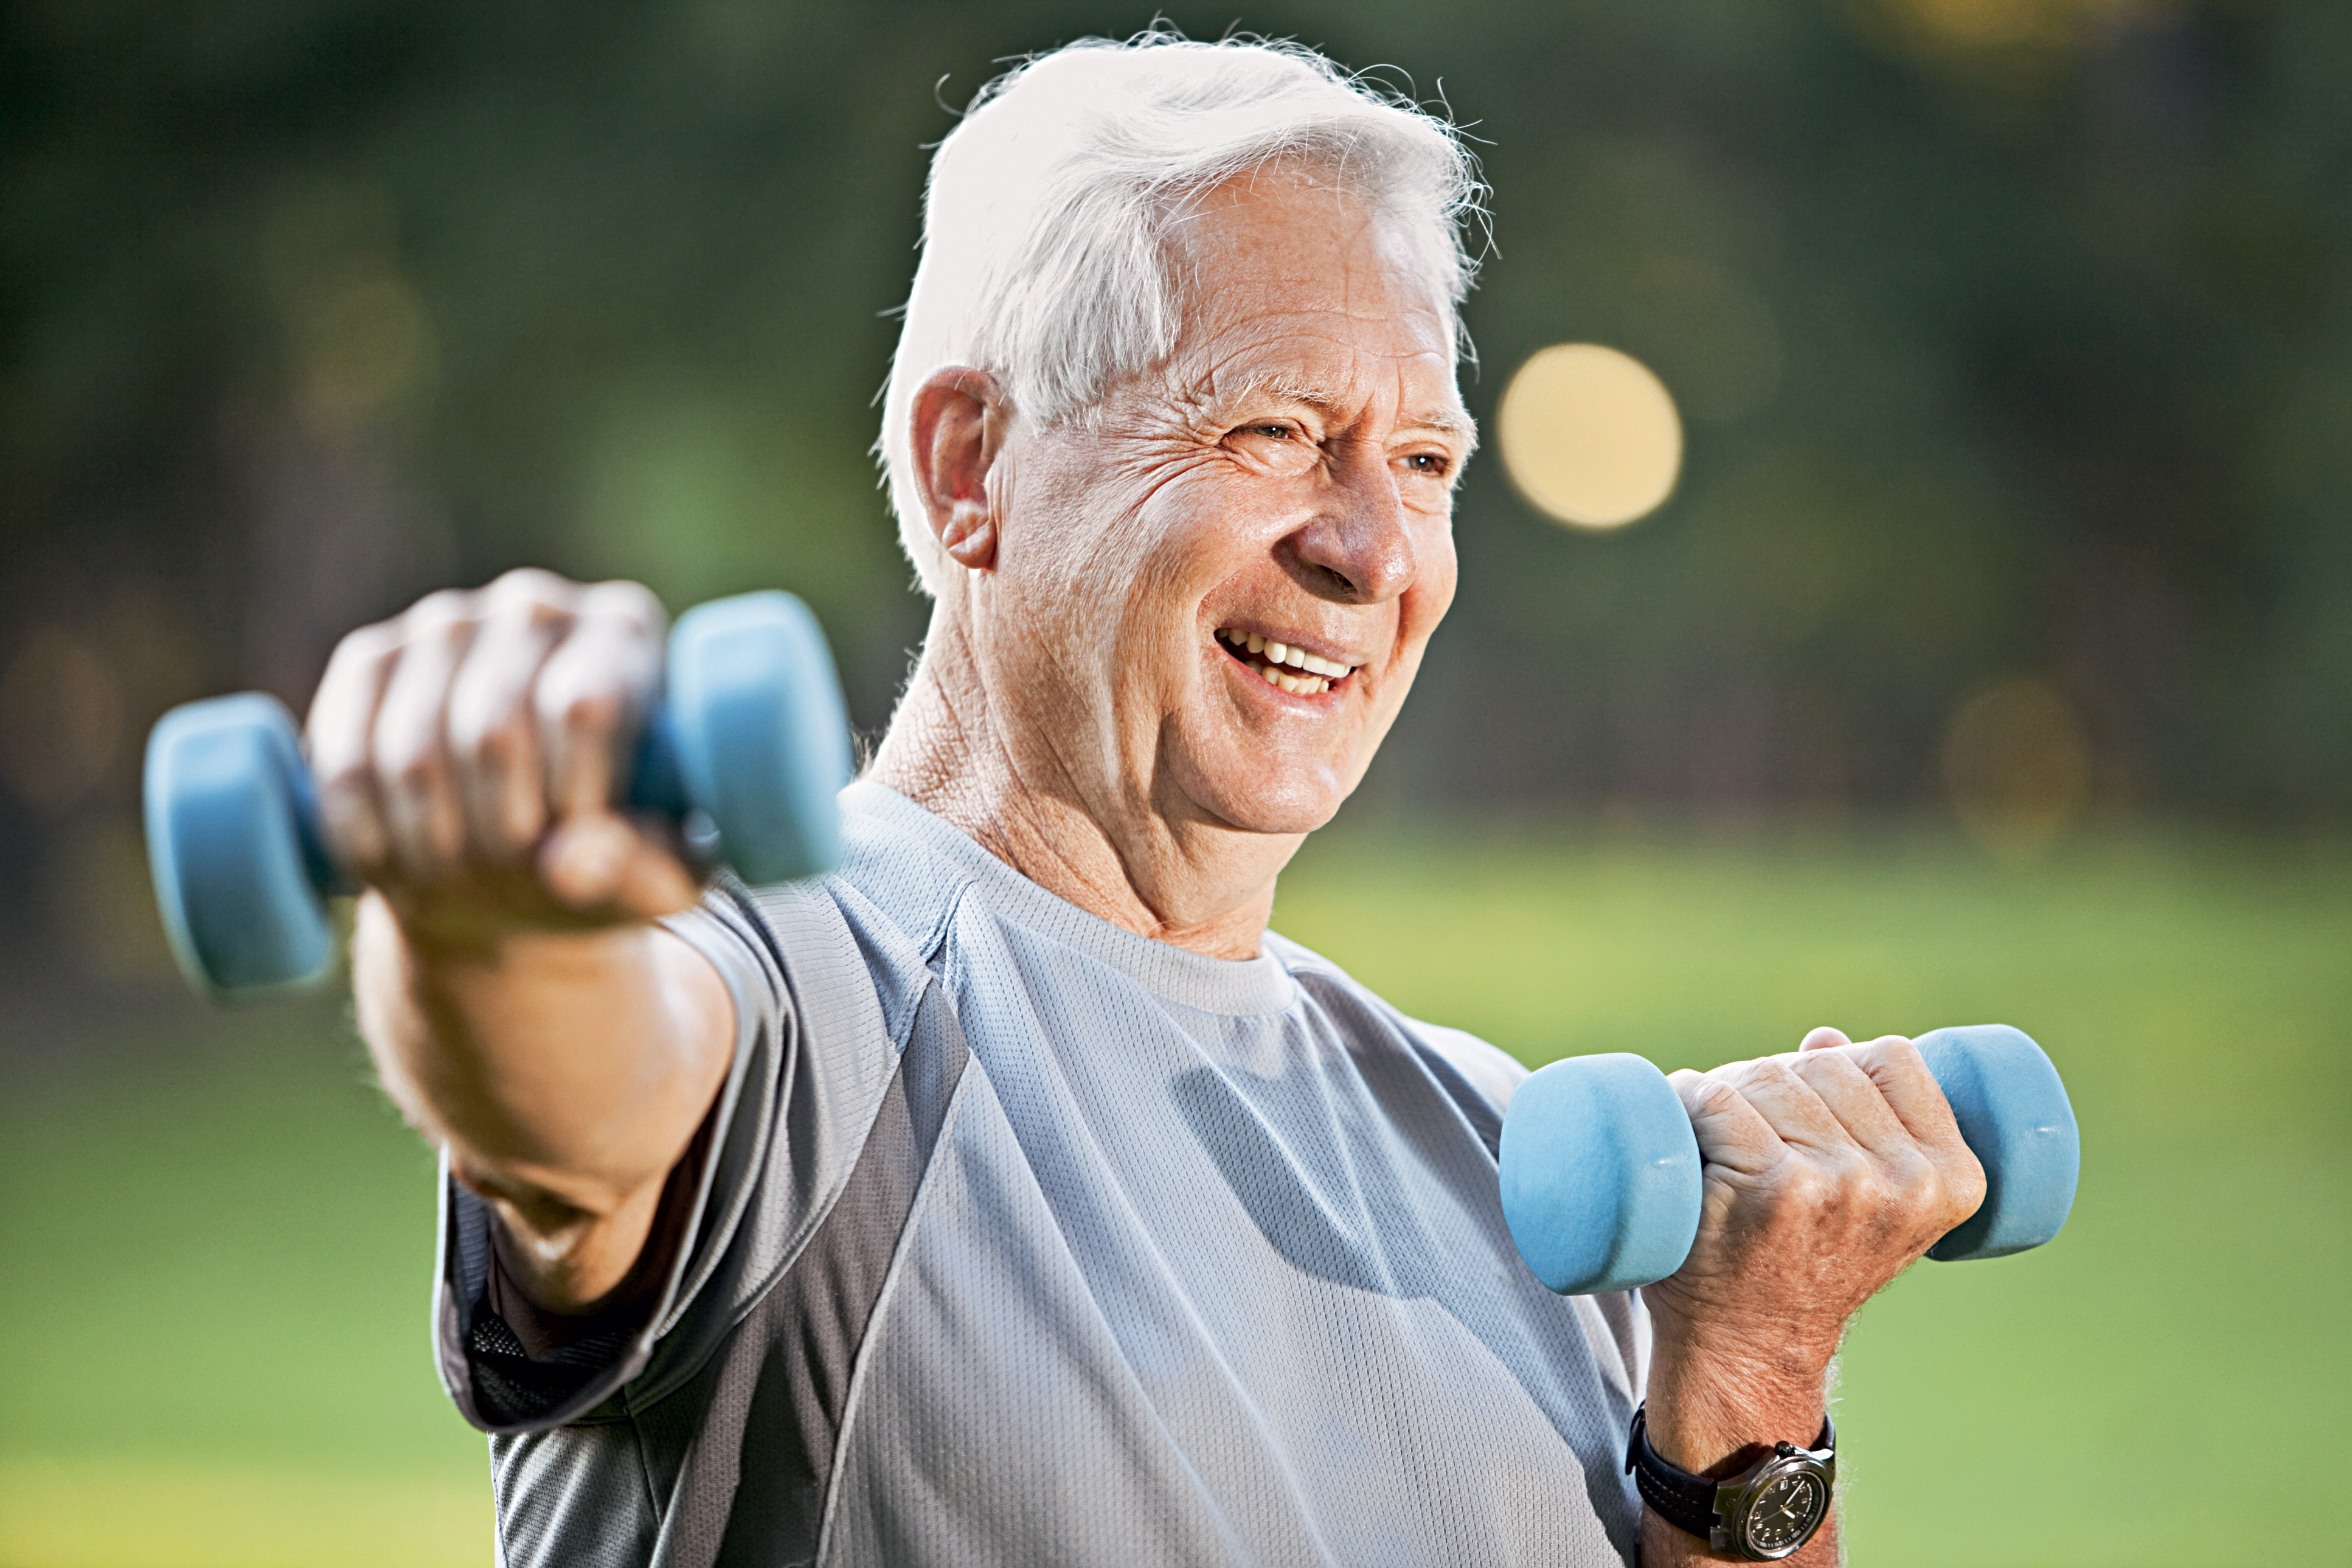 50+ Active Living